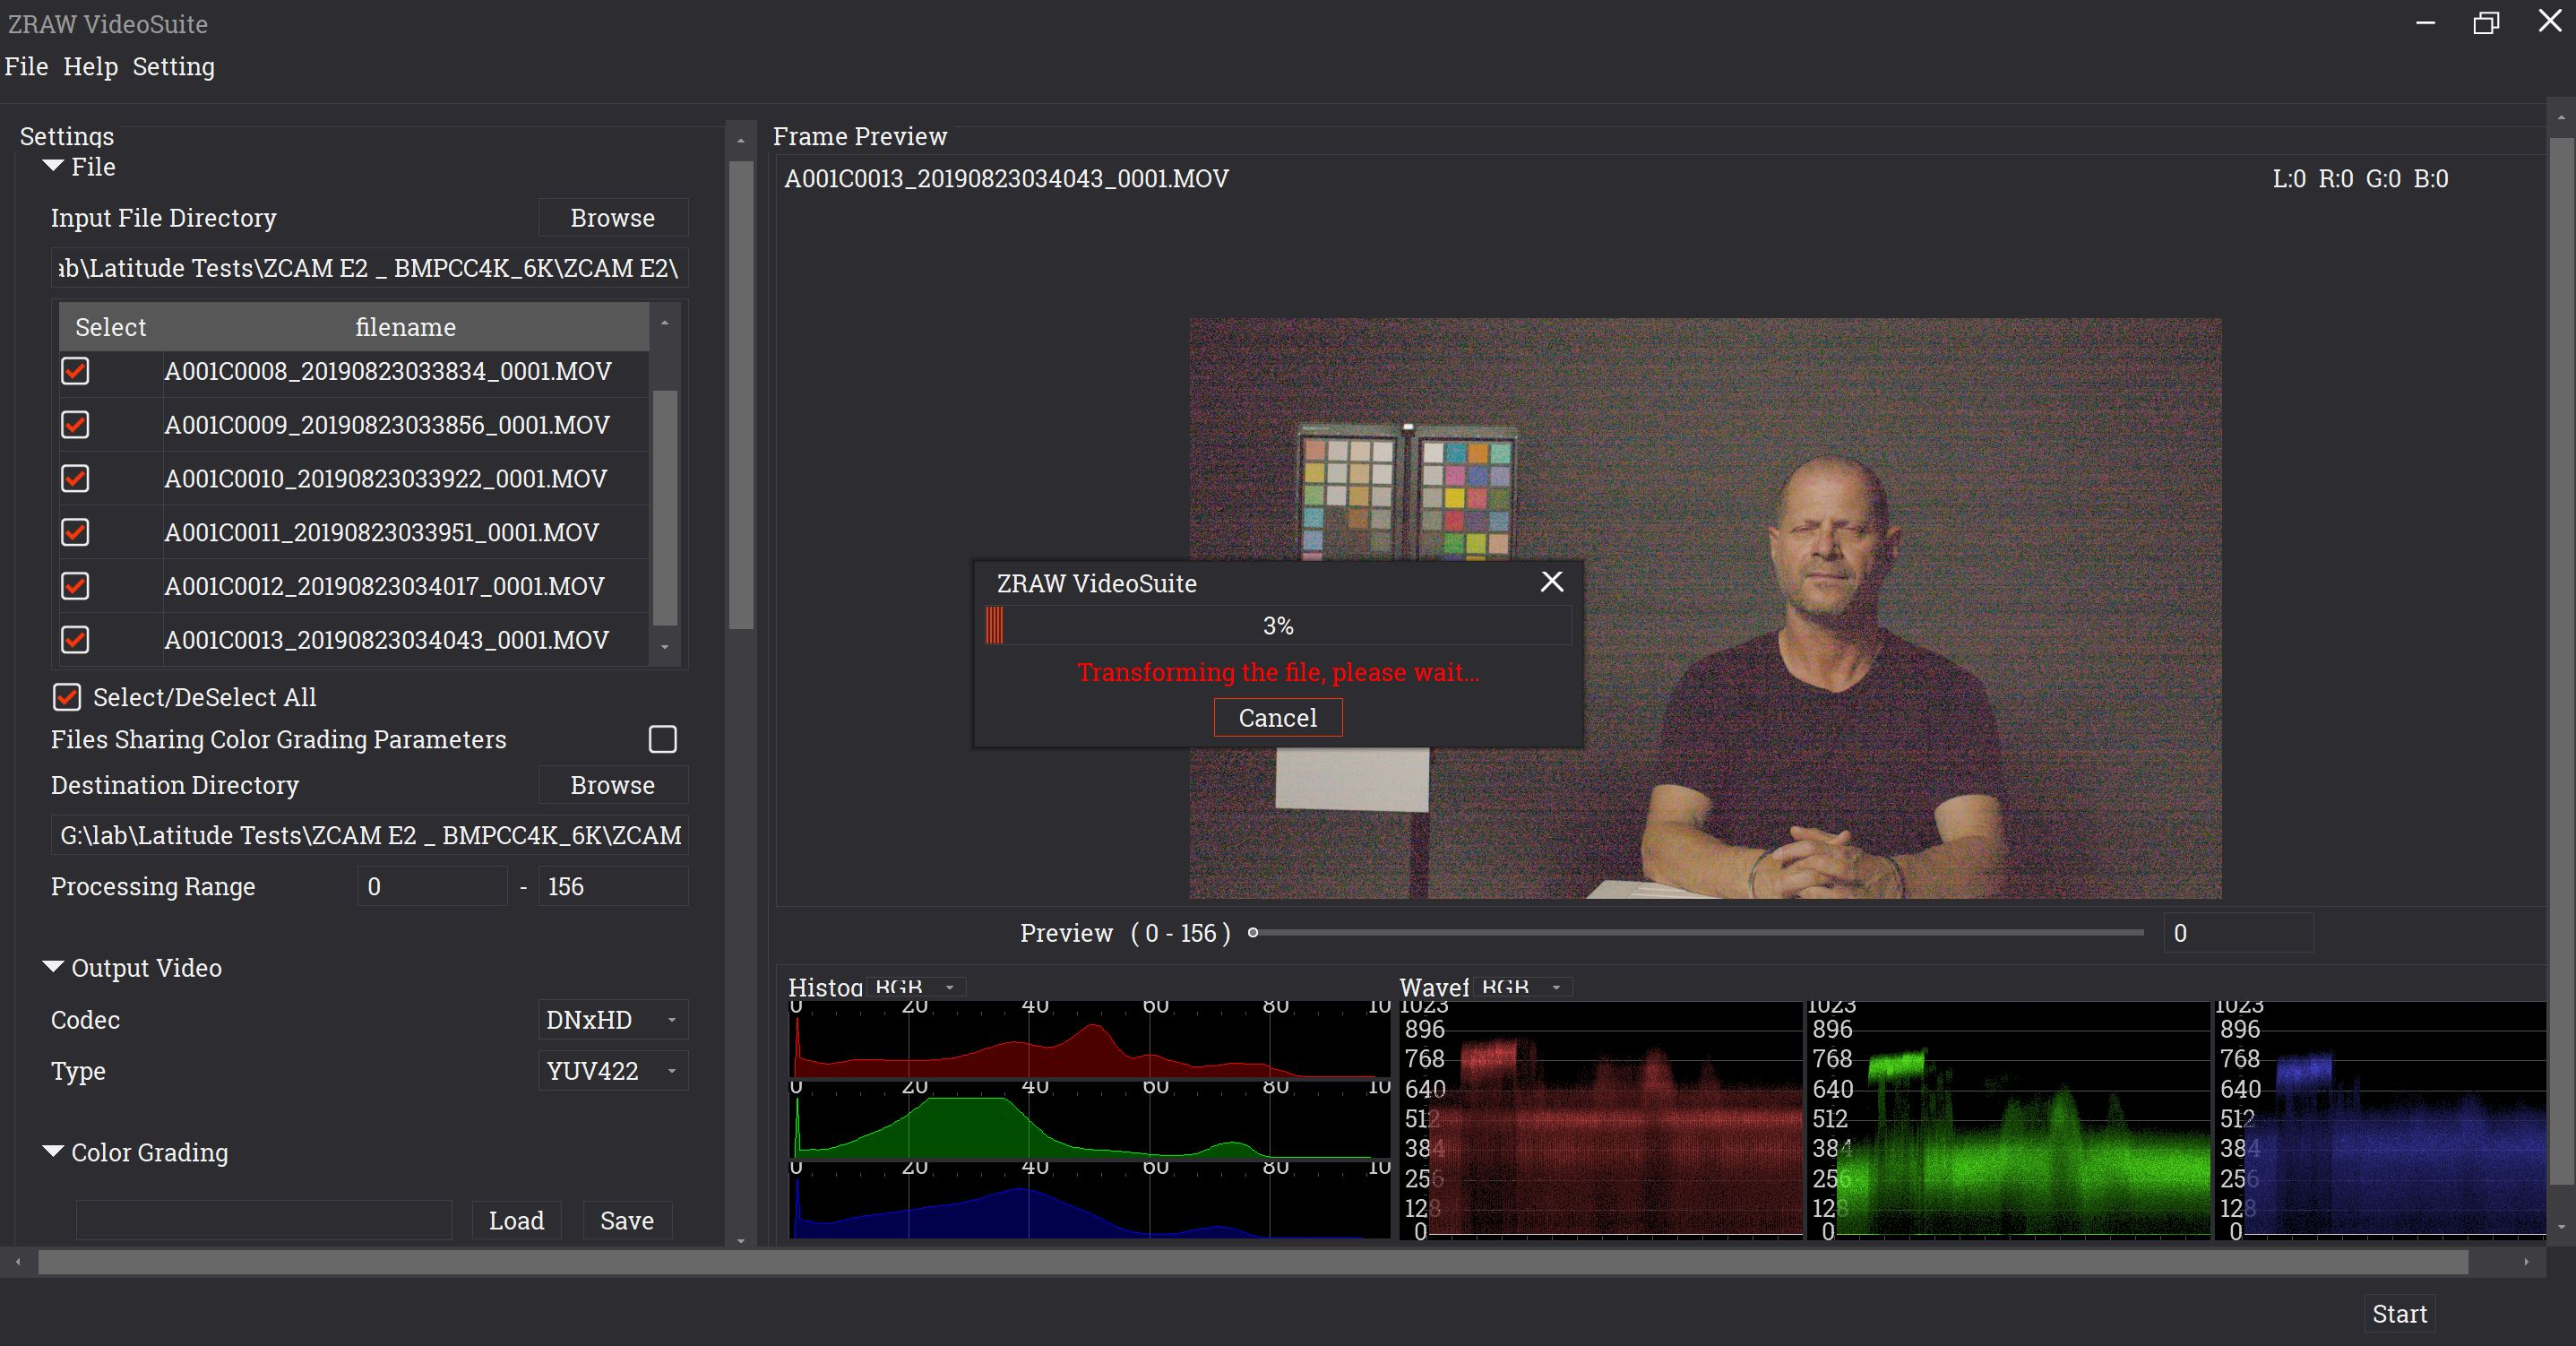 Z CAM ZRAW vs  Blackmagic RAW - Which One is Better? Our Lab